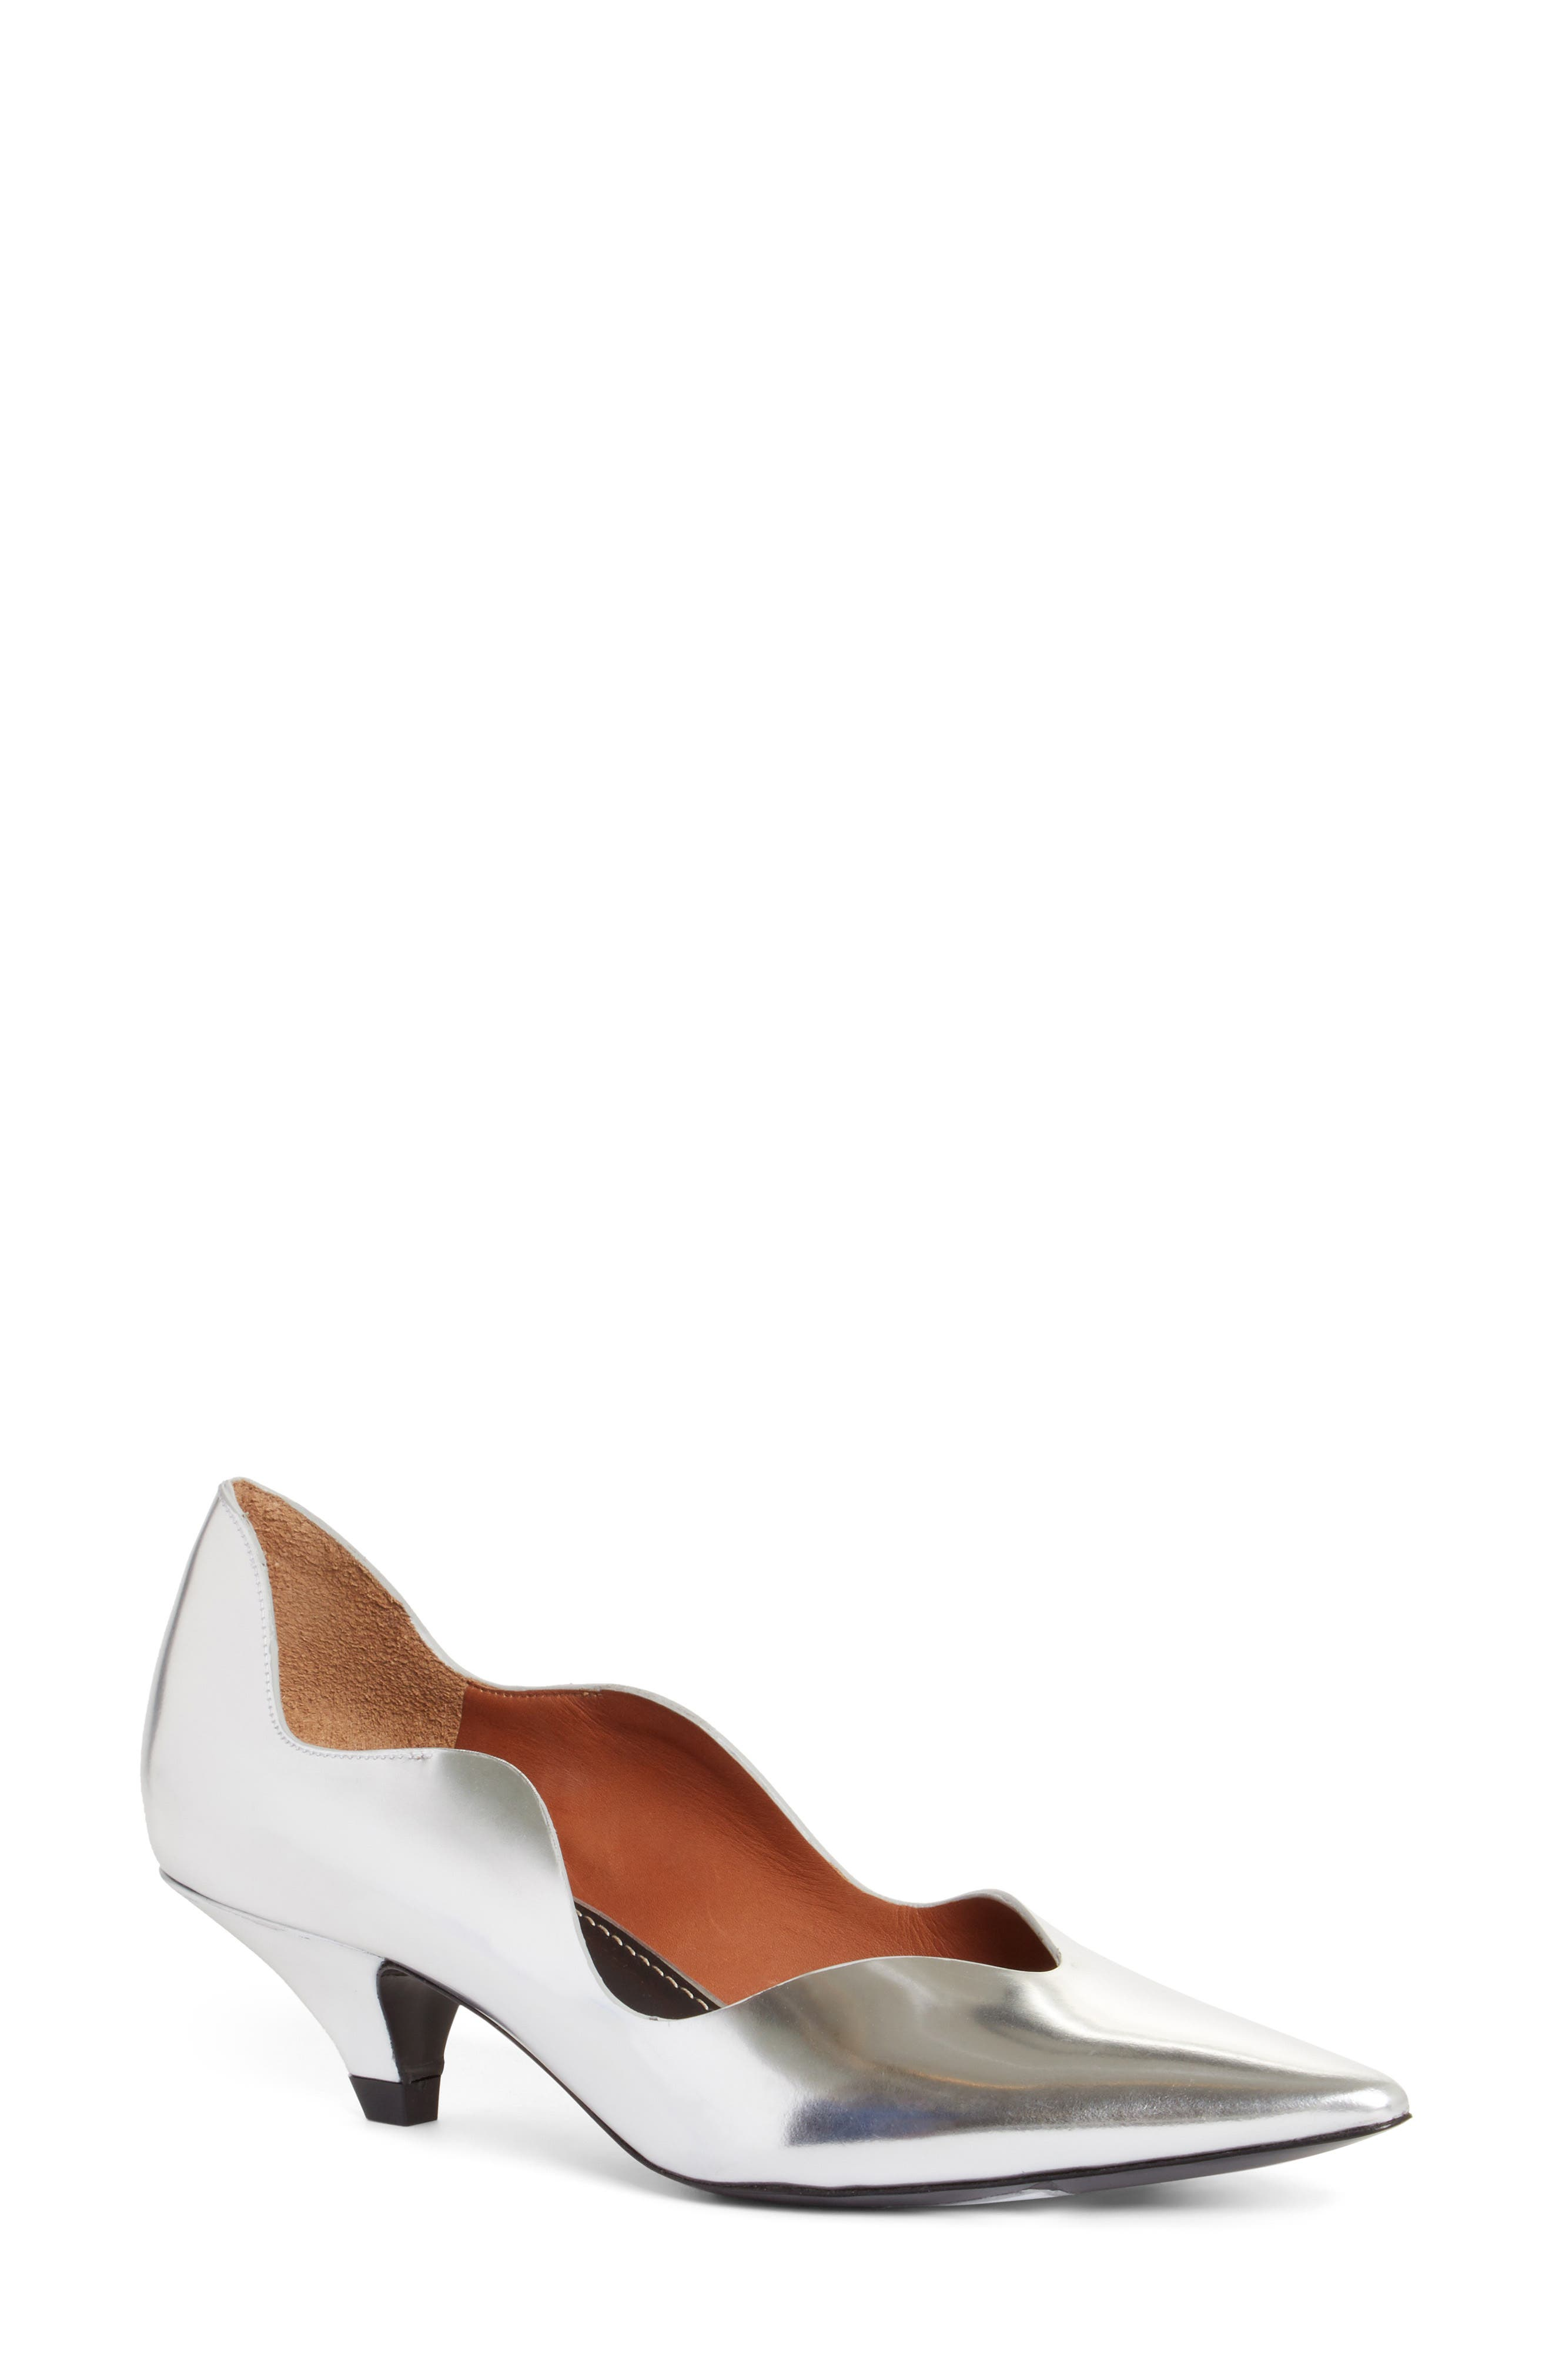 Wave Pointy Toe Pump,                         Main,                         color, 040